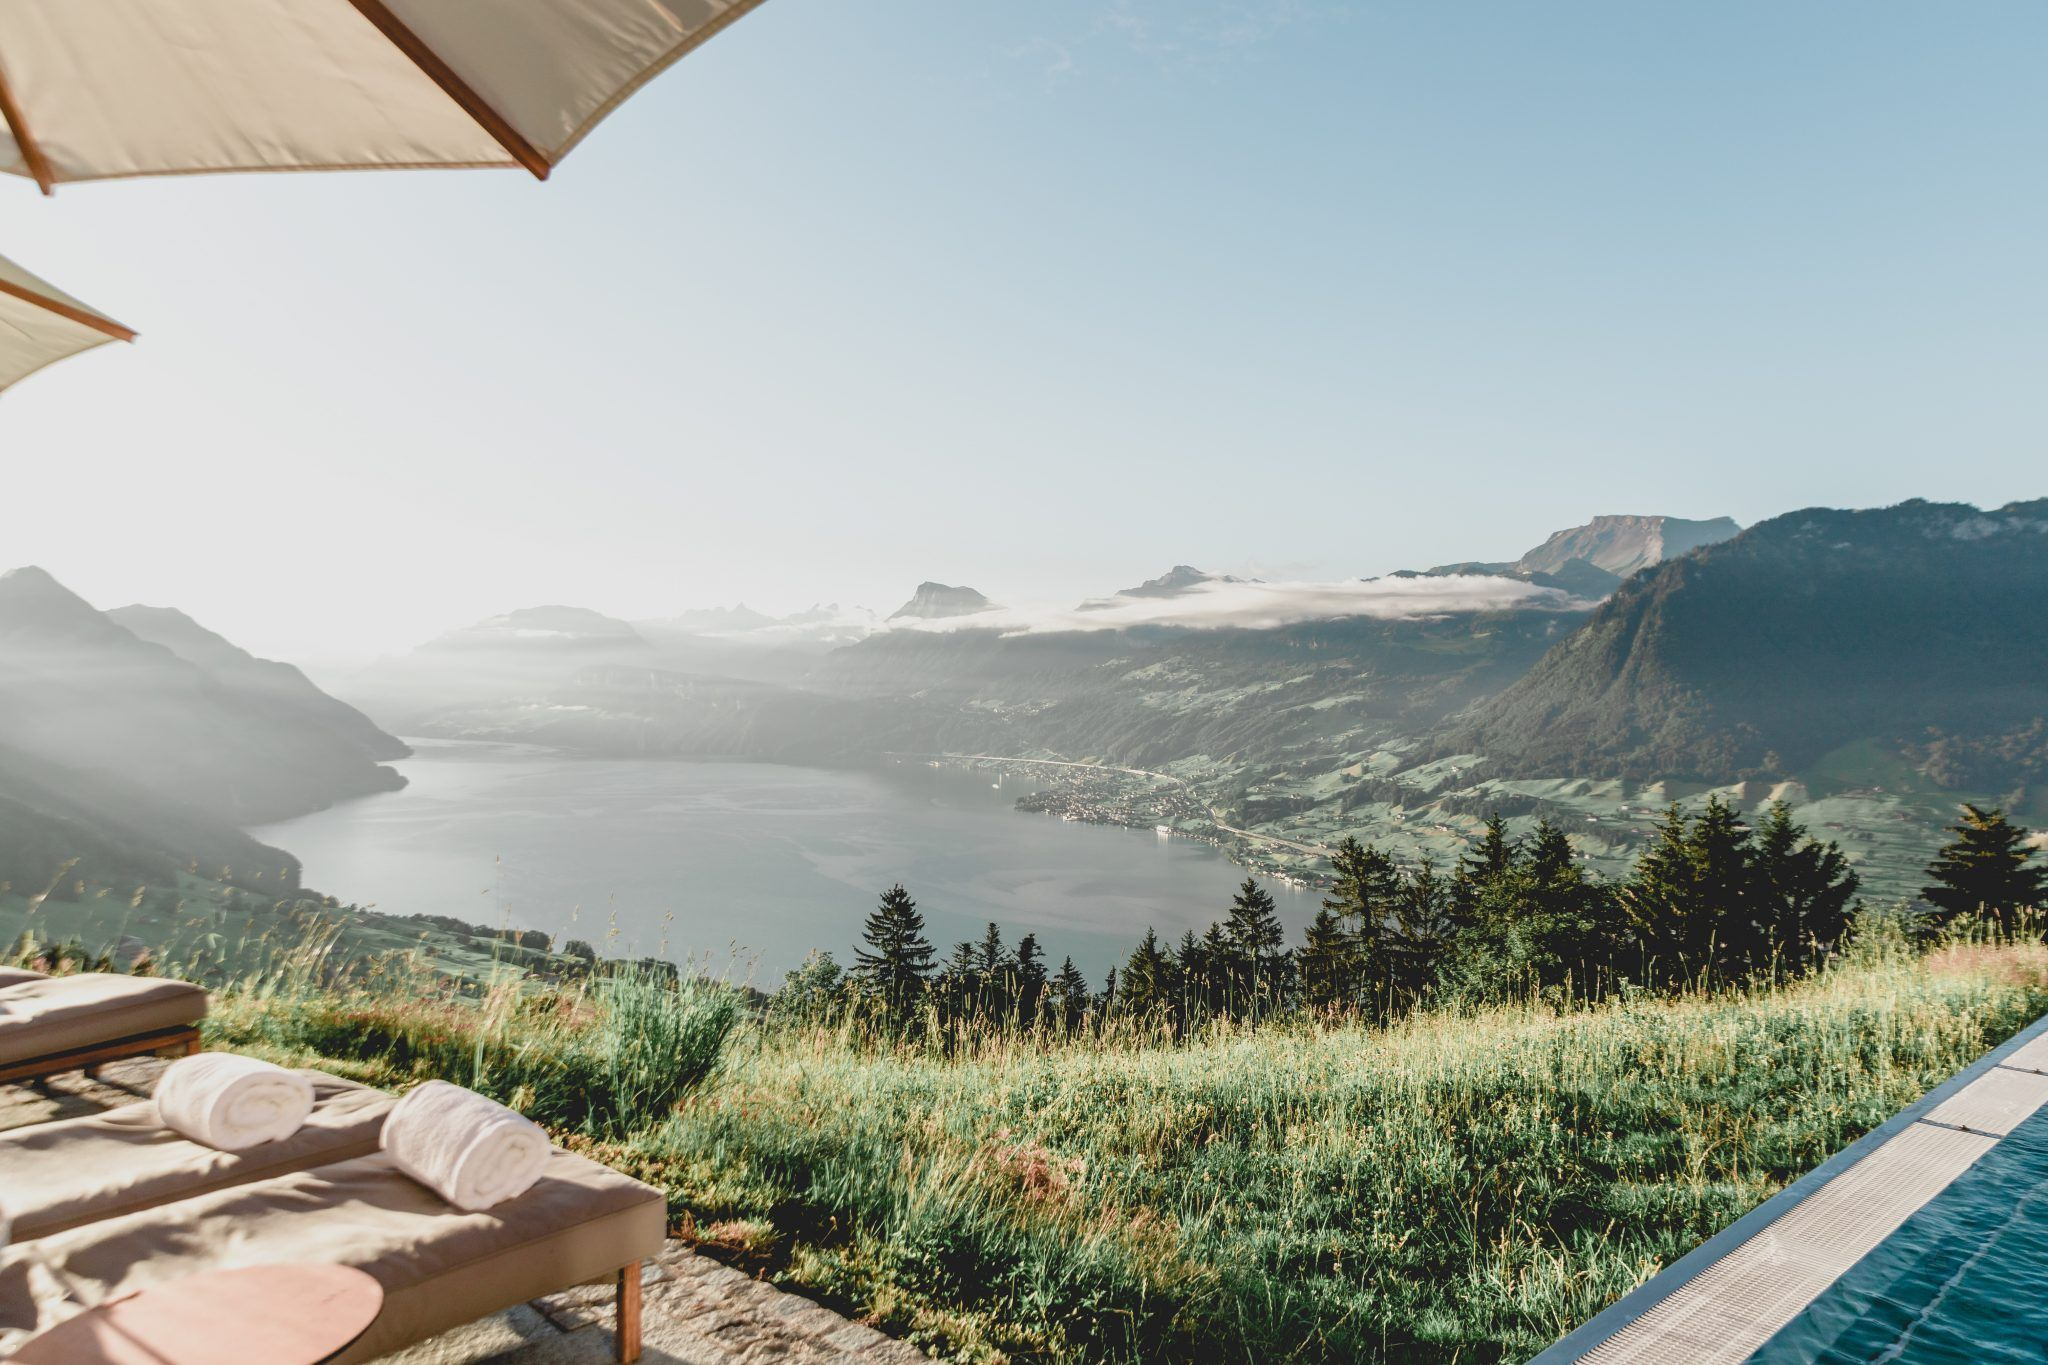 Best Hotel In Switzerland With Infinity Pool Staying At Villa Honegg The Best Boutique Hotel In Switzerland Charlies Wanderings In 2020 Switzerland Hotels Best Boutique Hotels Villa Honegg